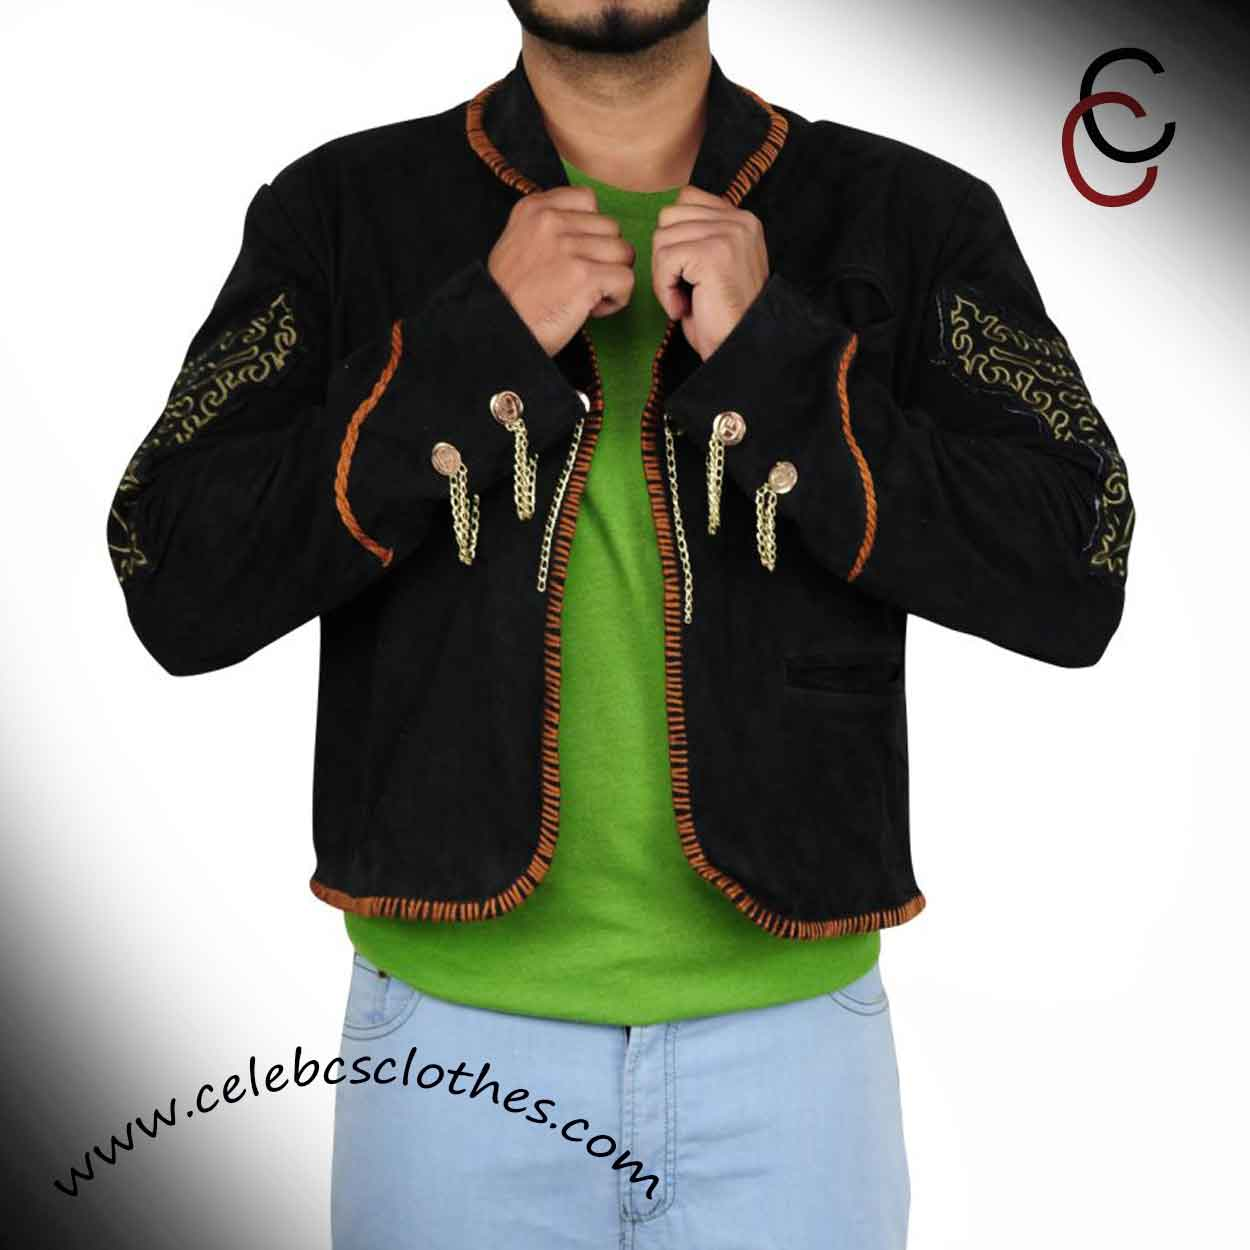 El Mariachi Scorpion Jacket For Sale Celebs Clothes